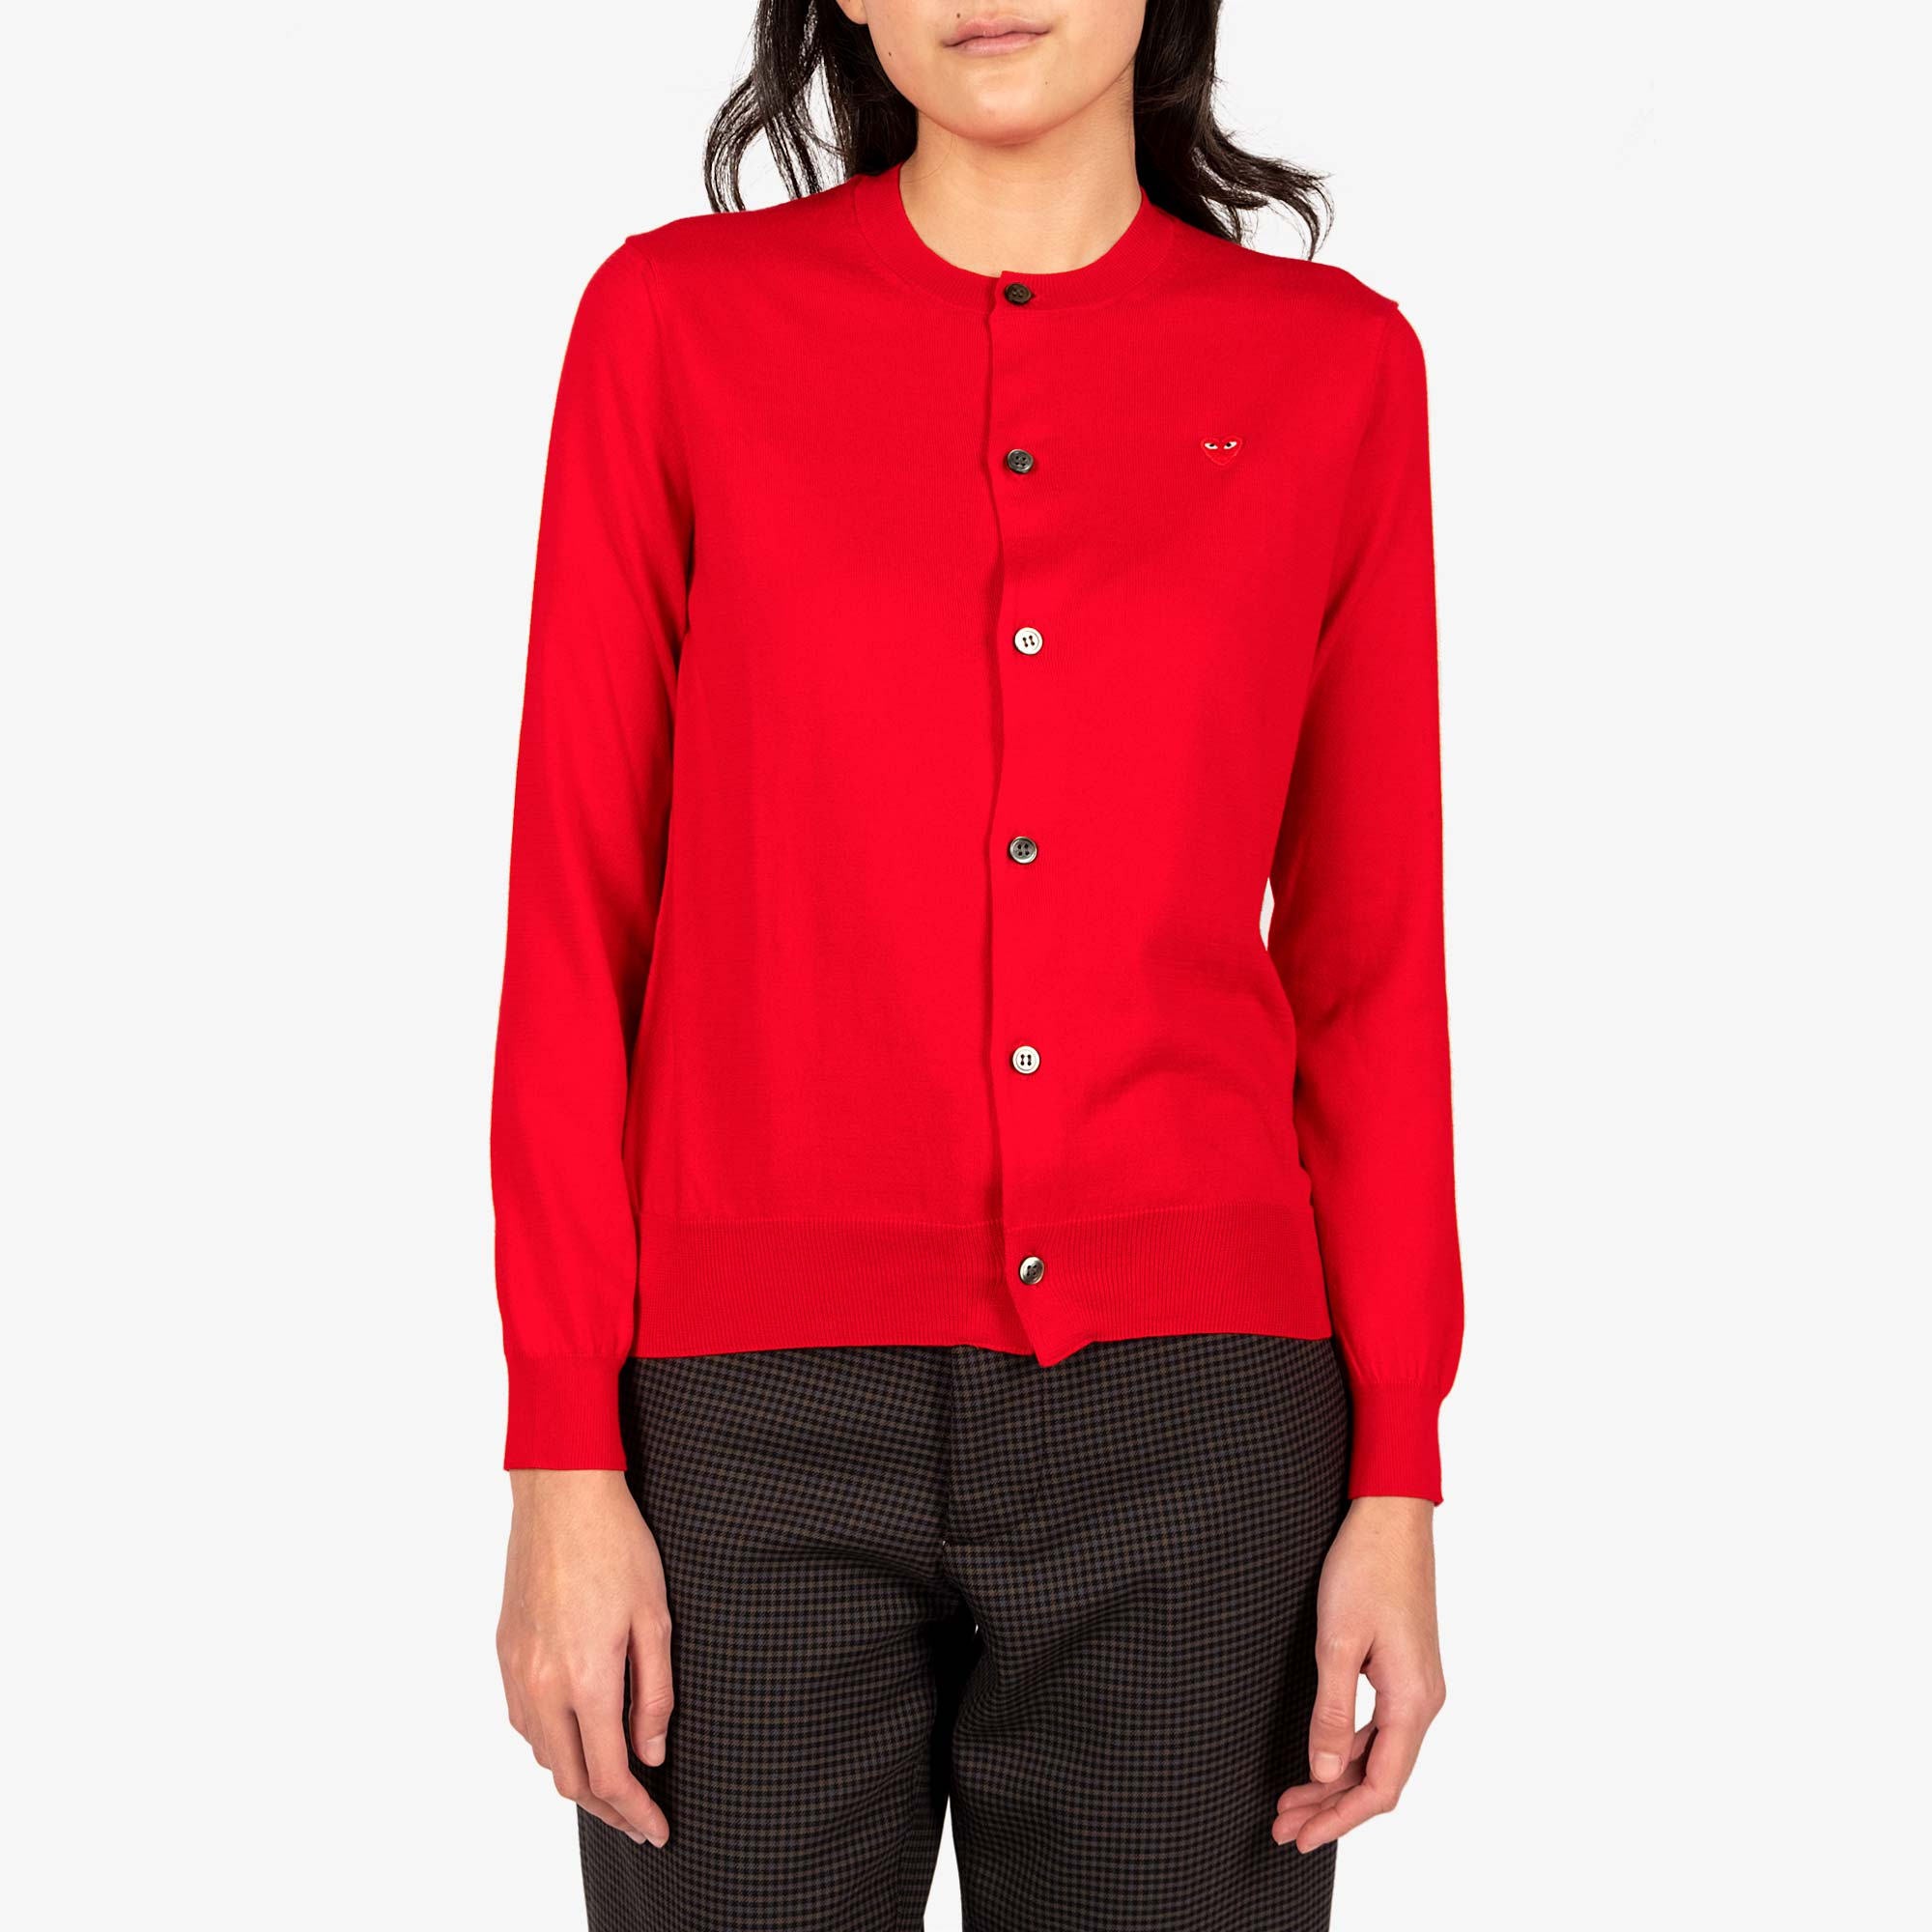 Comme des Garçons - PLAY Small Red Emblem  Womens Cardigan - Red 1